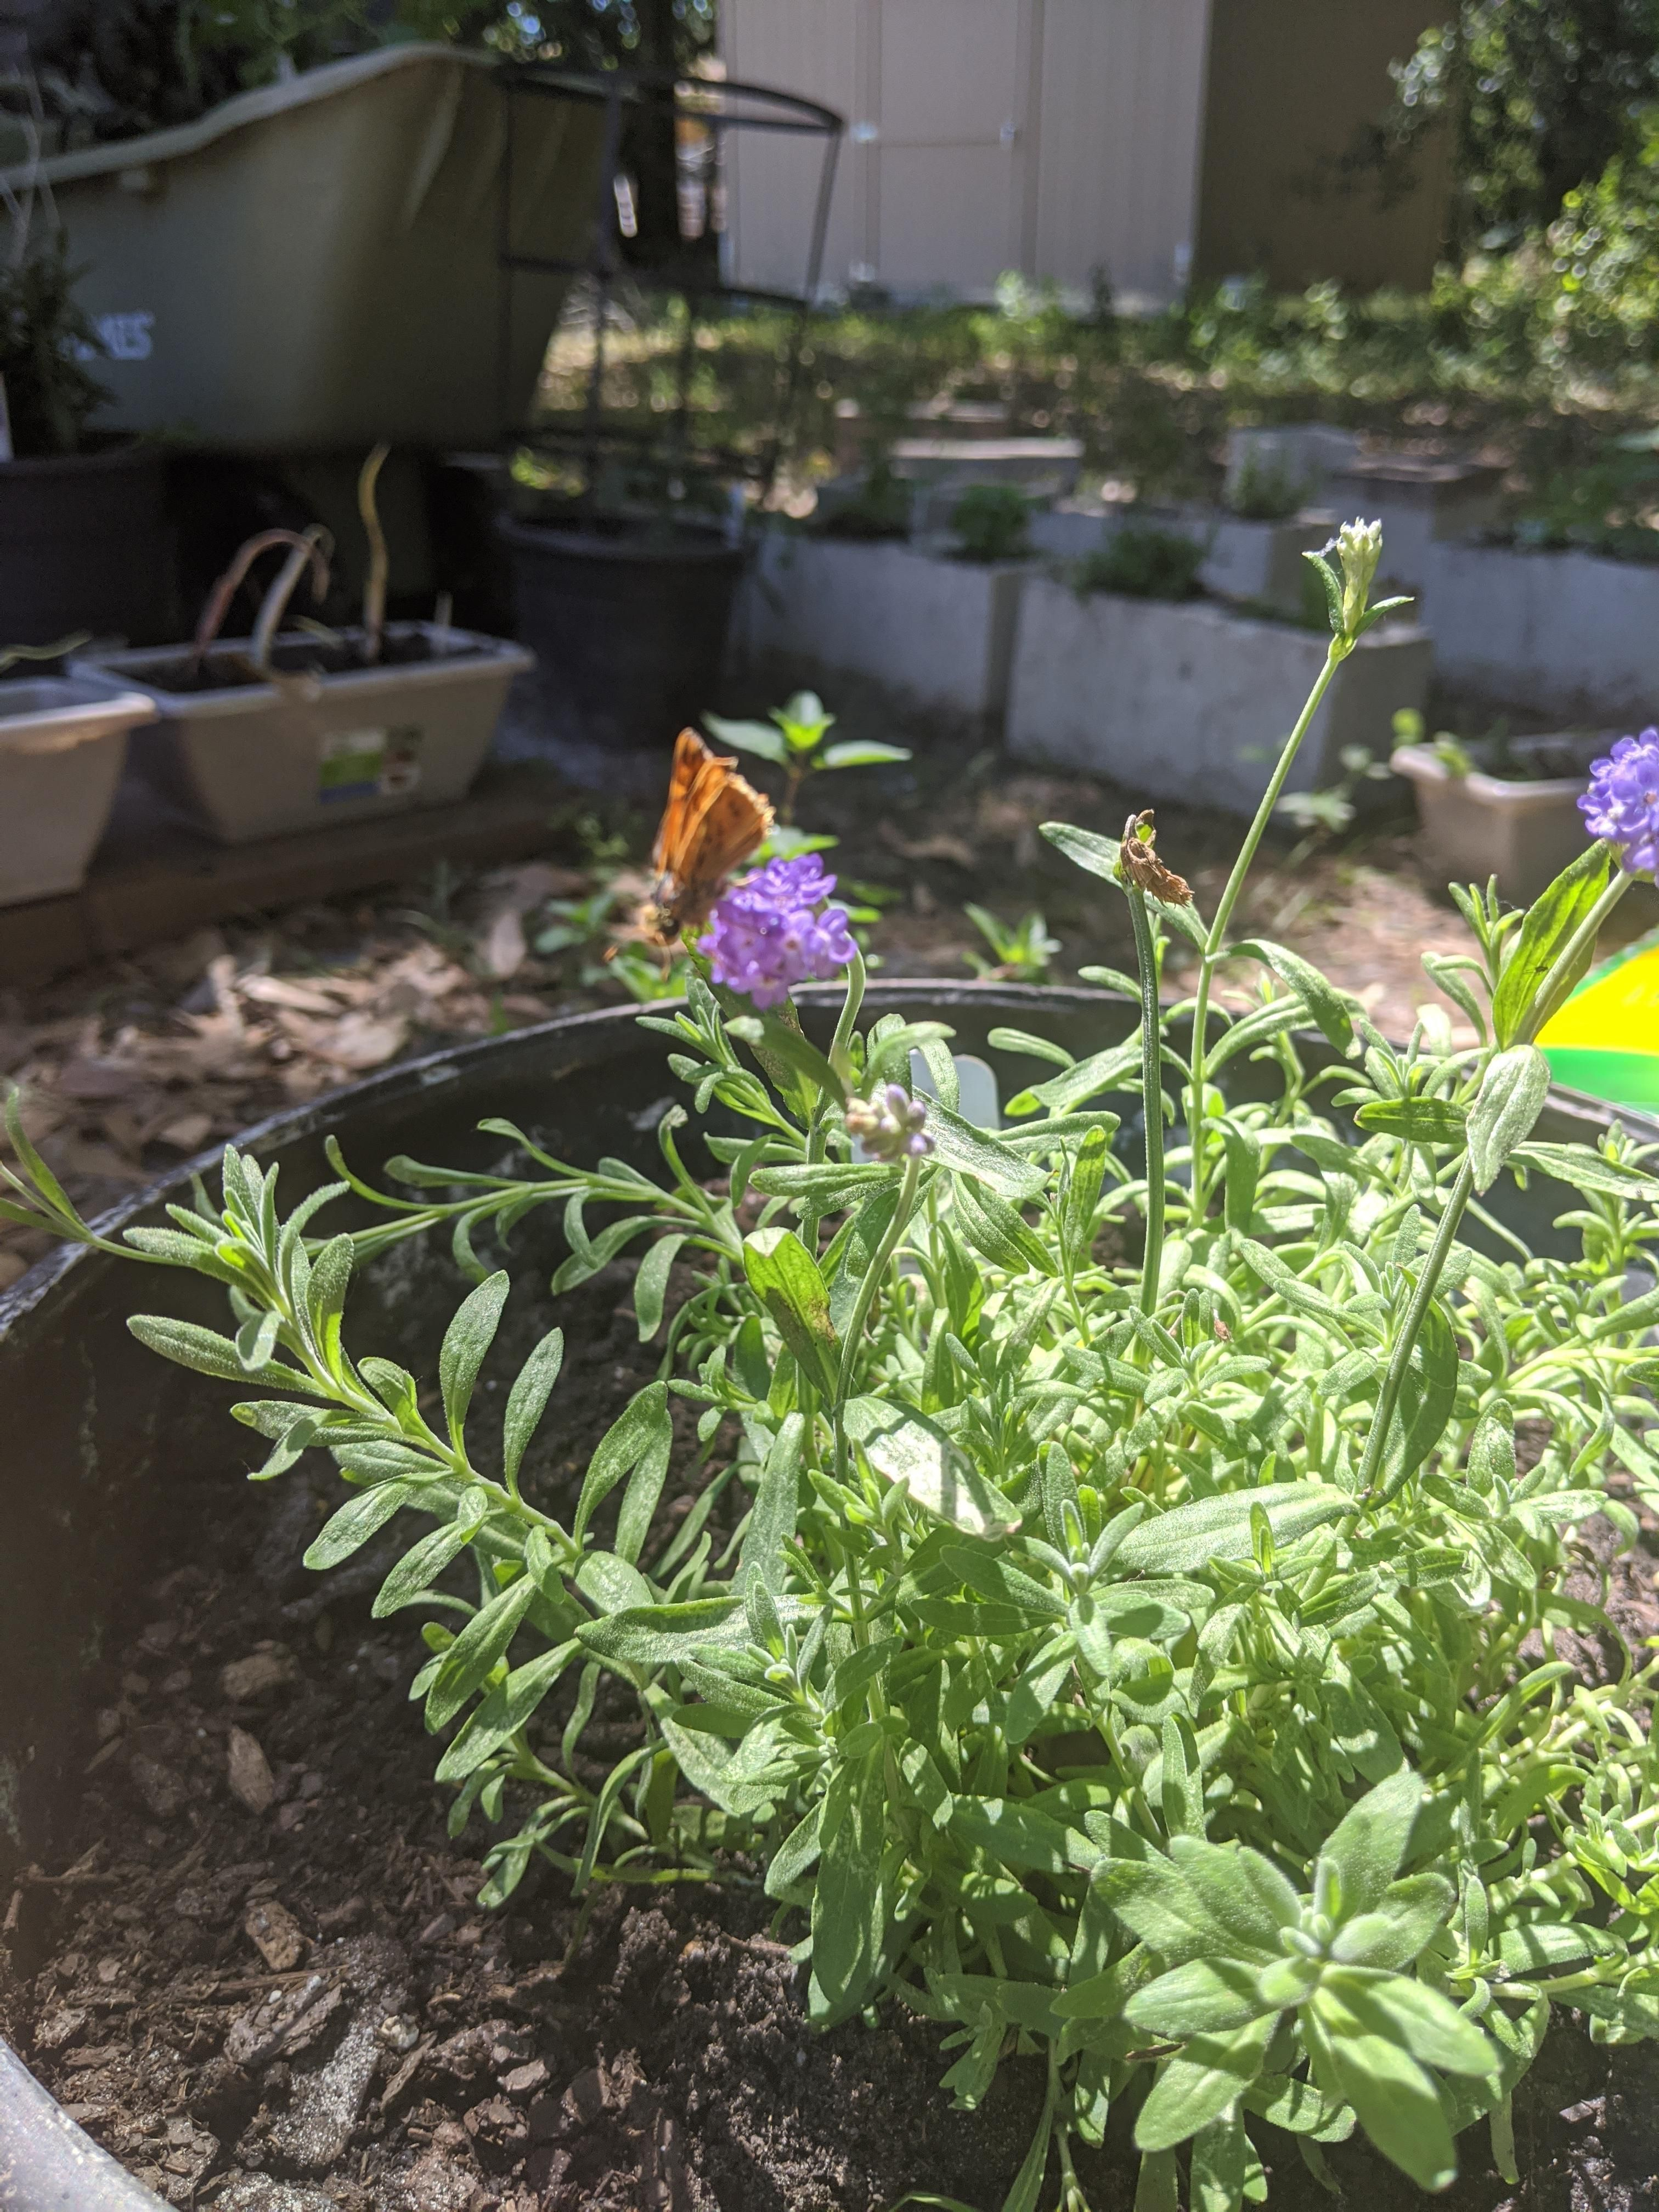 Butterfly on my lavender #gardening #garden #DIY #home #flowers #roses #nature #landscaping #horticulture